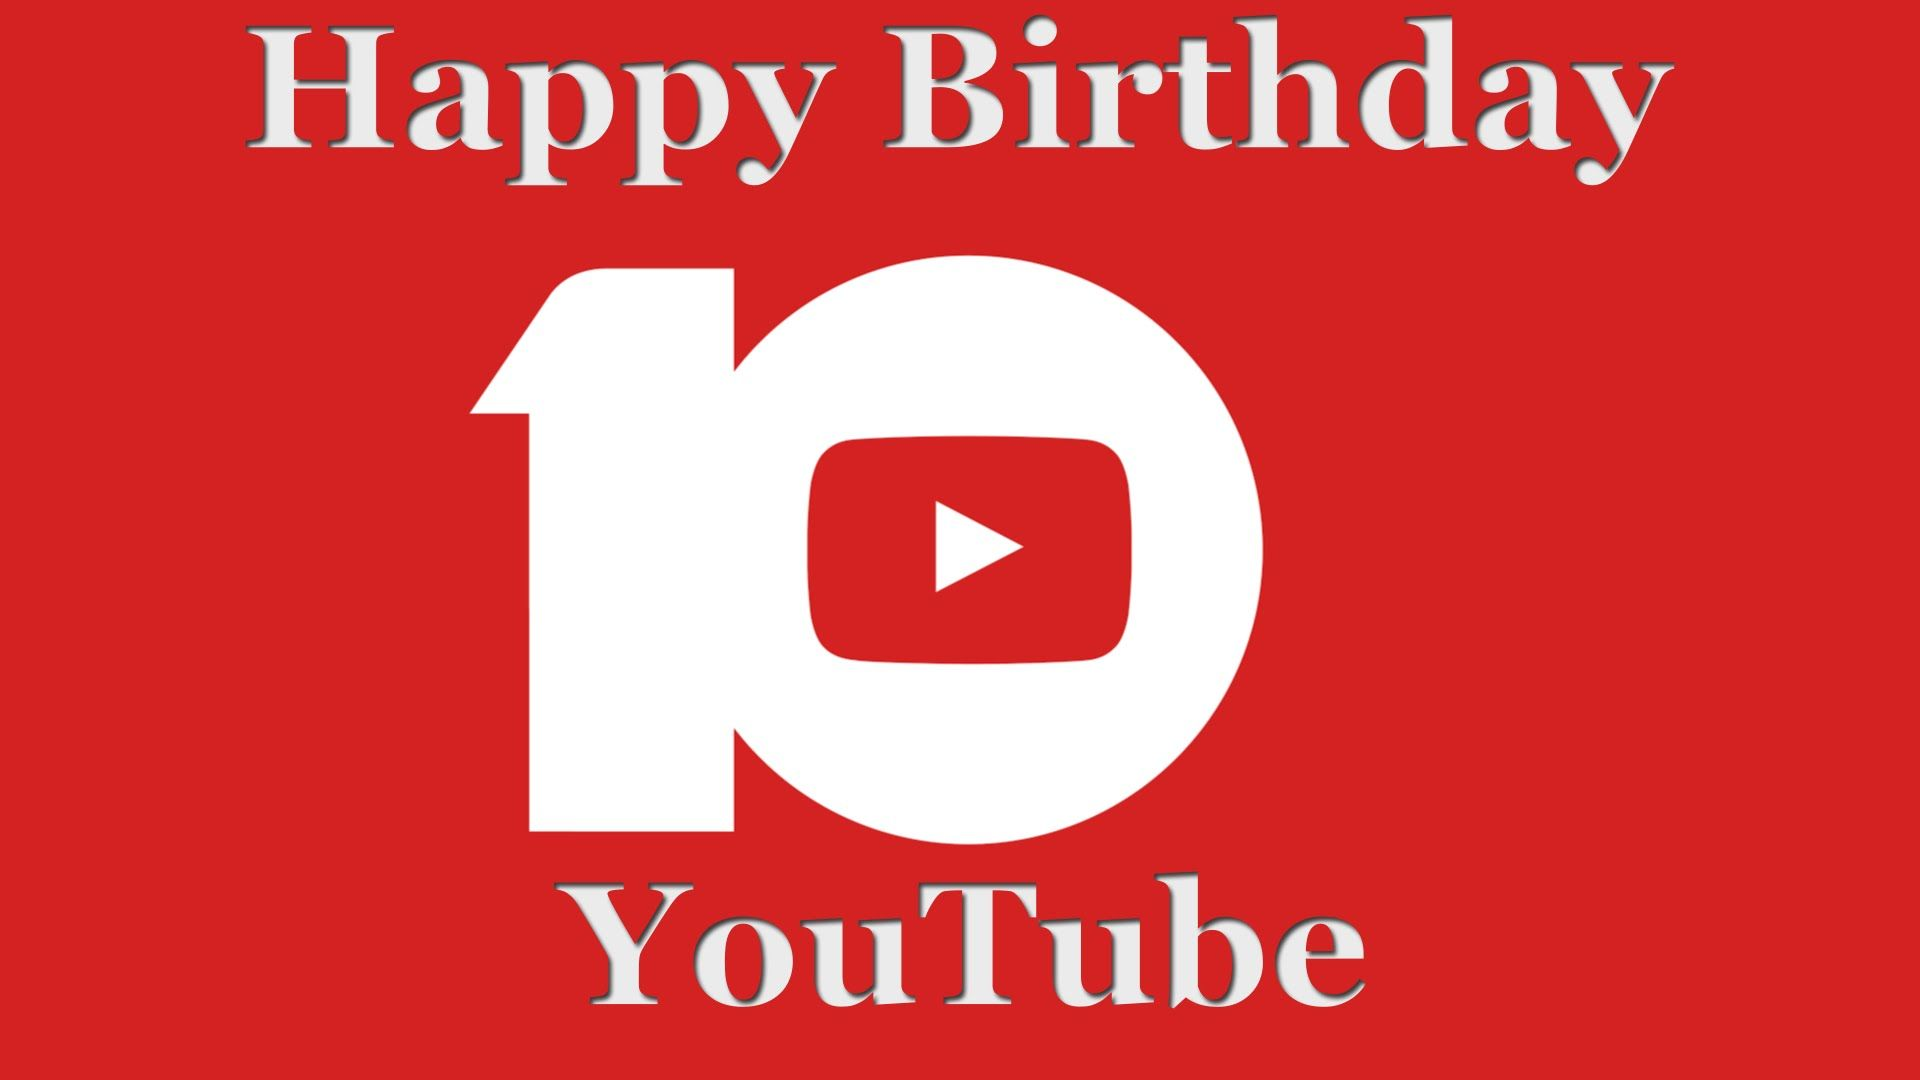 Happy 10th Birthday YouTube: Here Are The 10 Best Viral Videos Of All Time